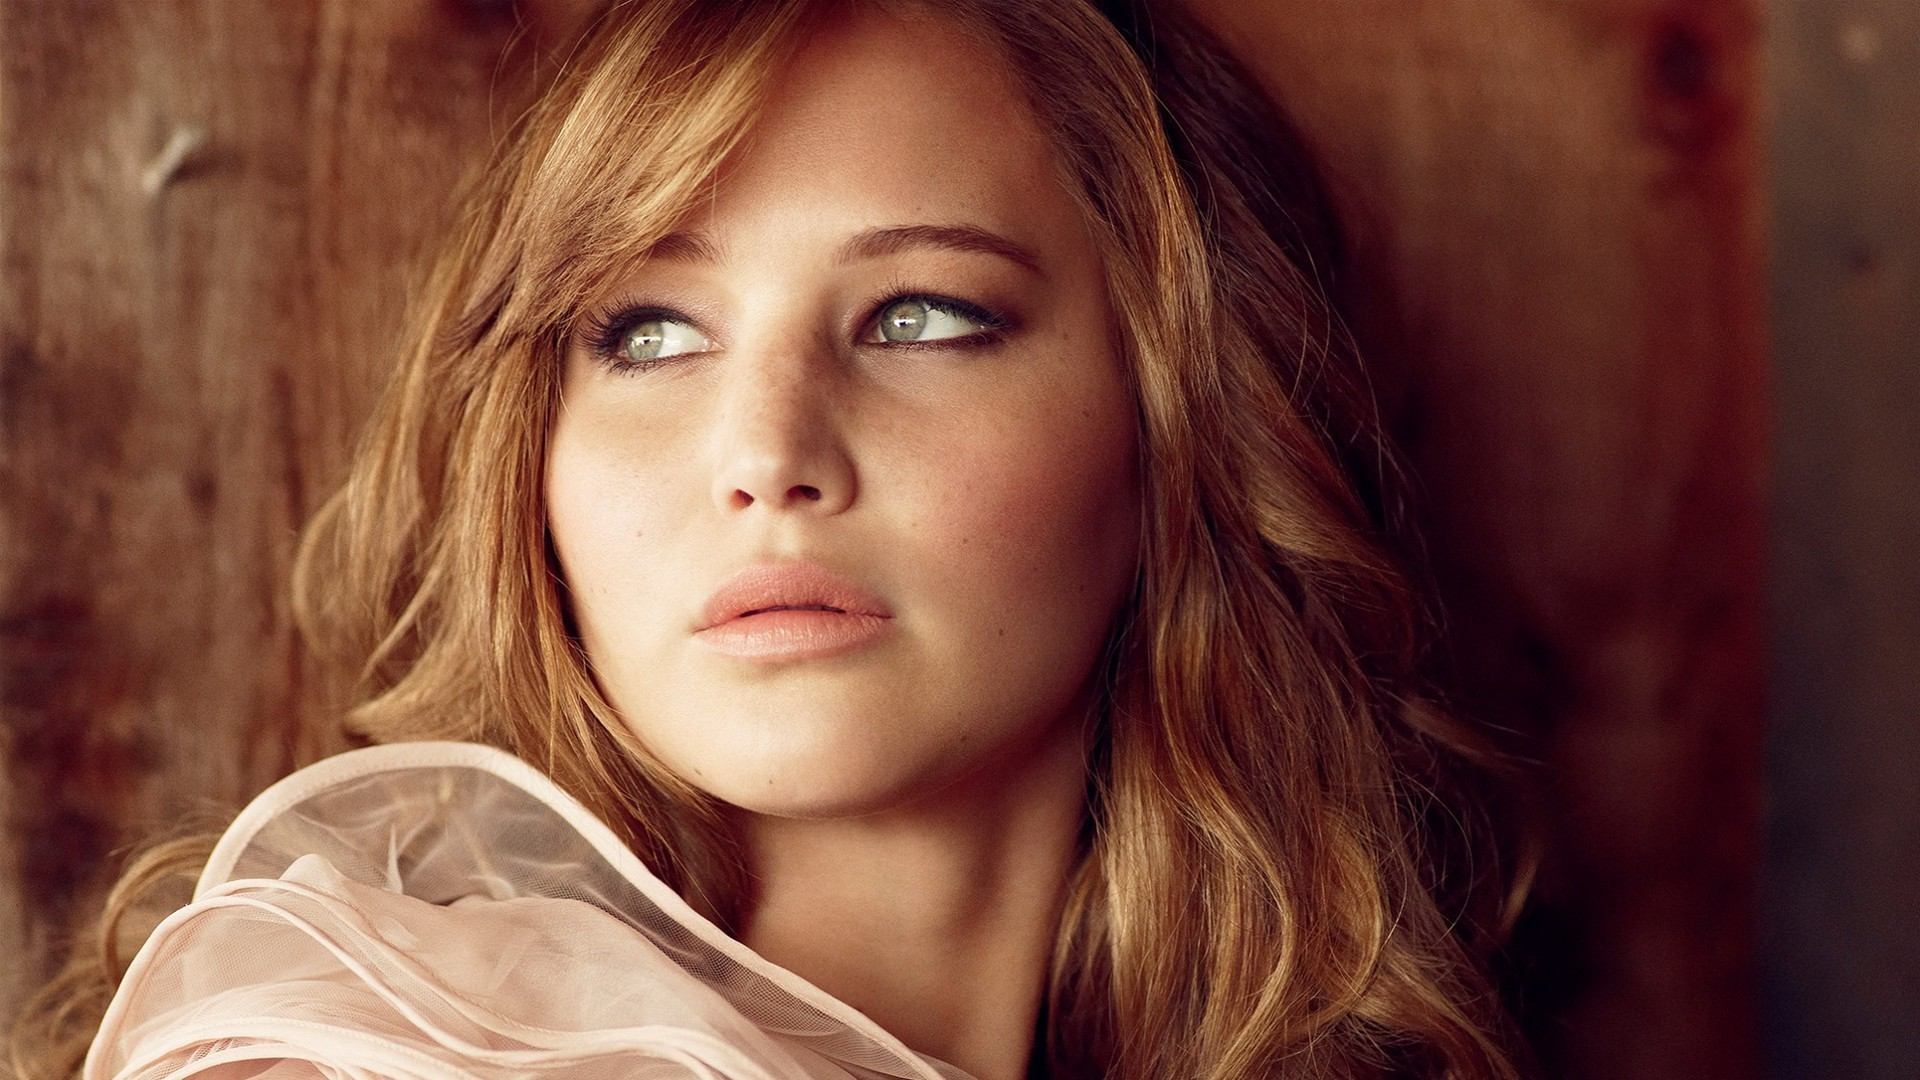 Hunger Games' Jennifer Lawrence named FHM's sexiest woman alive in 2014 | Blastr